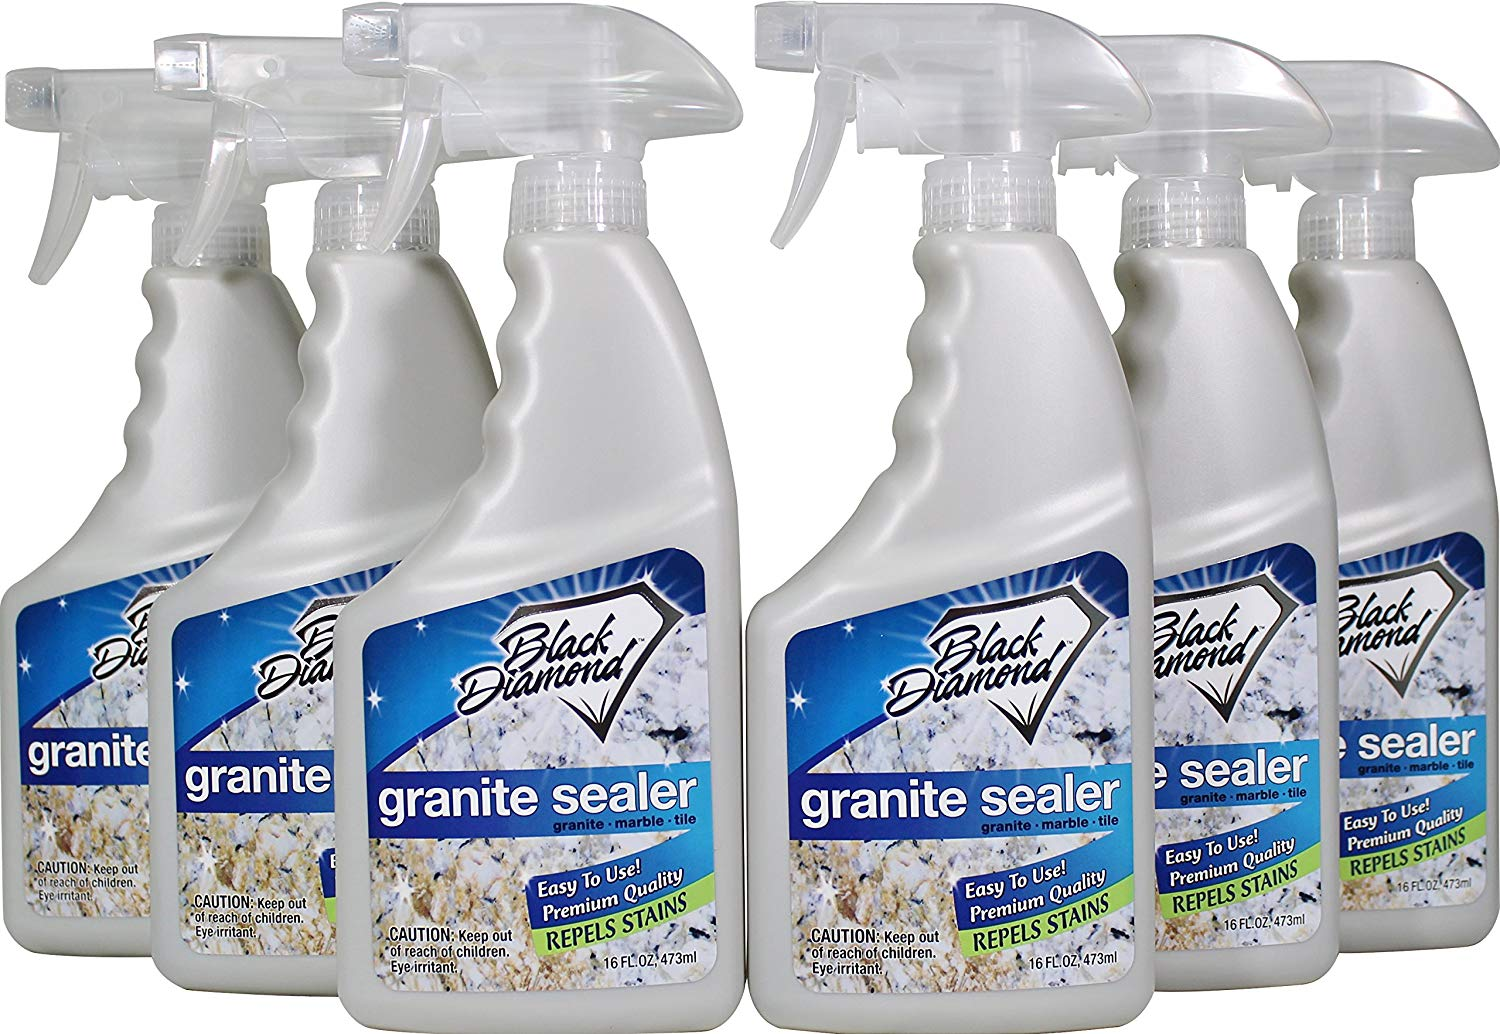 Black Diamond Stoneworks Granite Sealer: Seals & Protects, Granite, Marble, Travertine, Limestone & Concrete Counter Tops. Works Great On Grout, Fireplaces and Patios. 6 pack